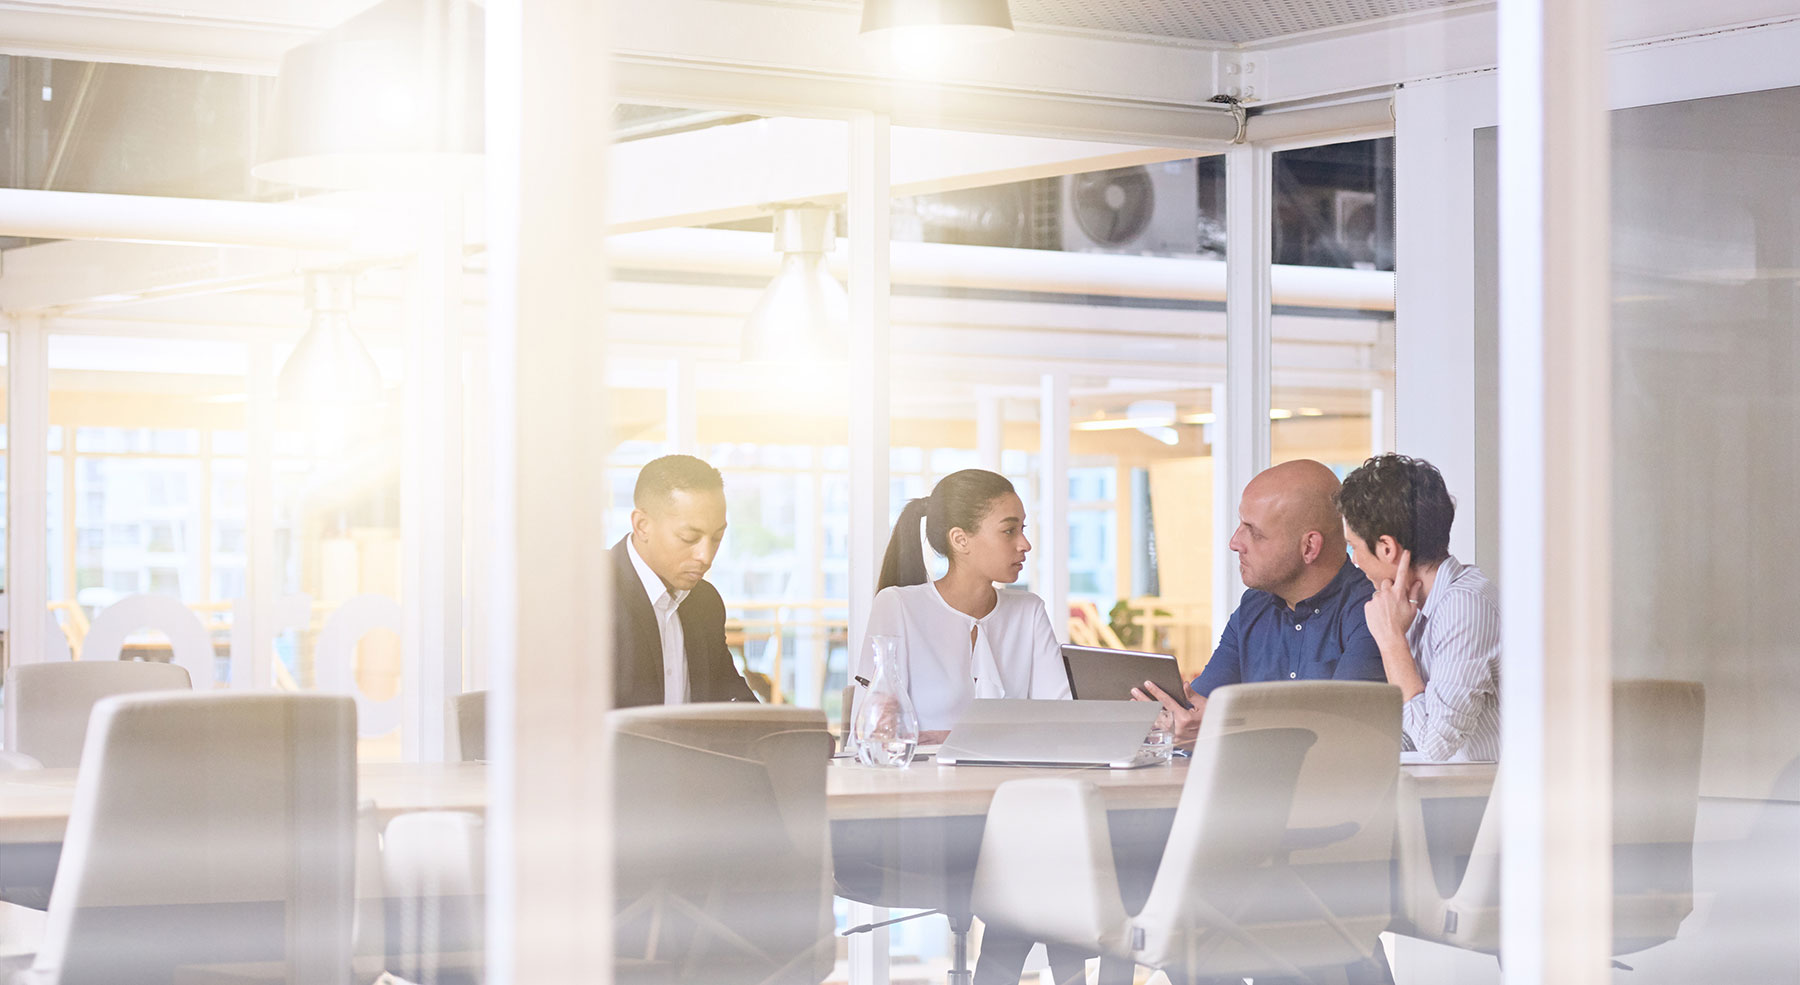 How to Minimize the Damaging Effects of Meetings Starting Late